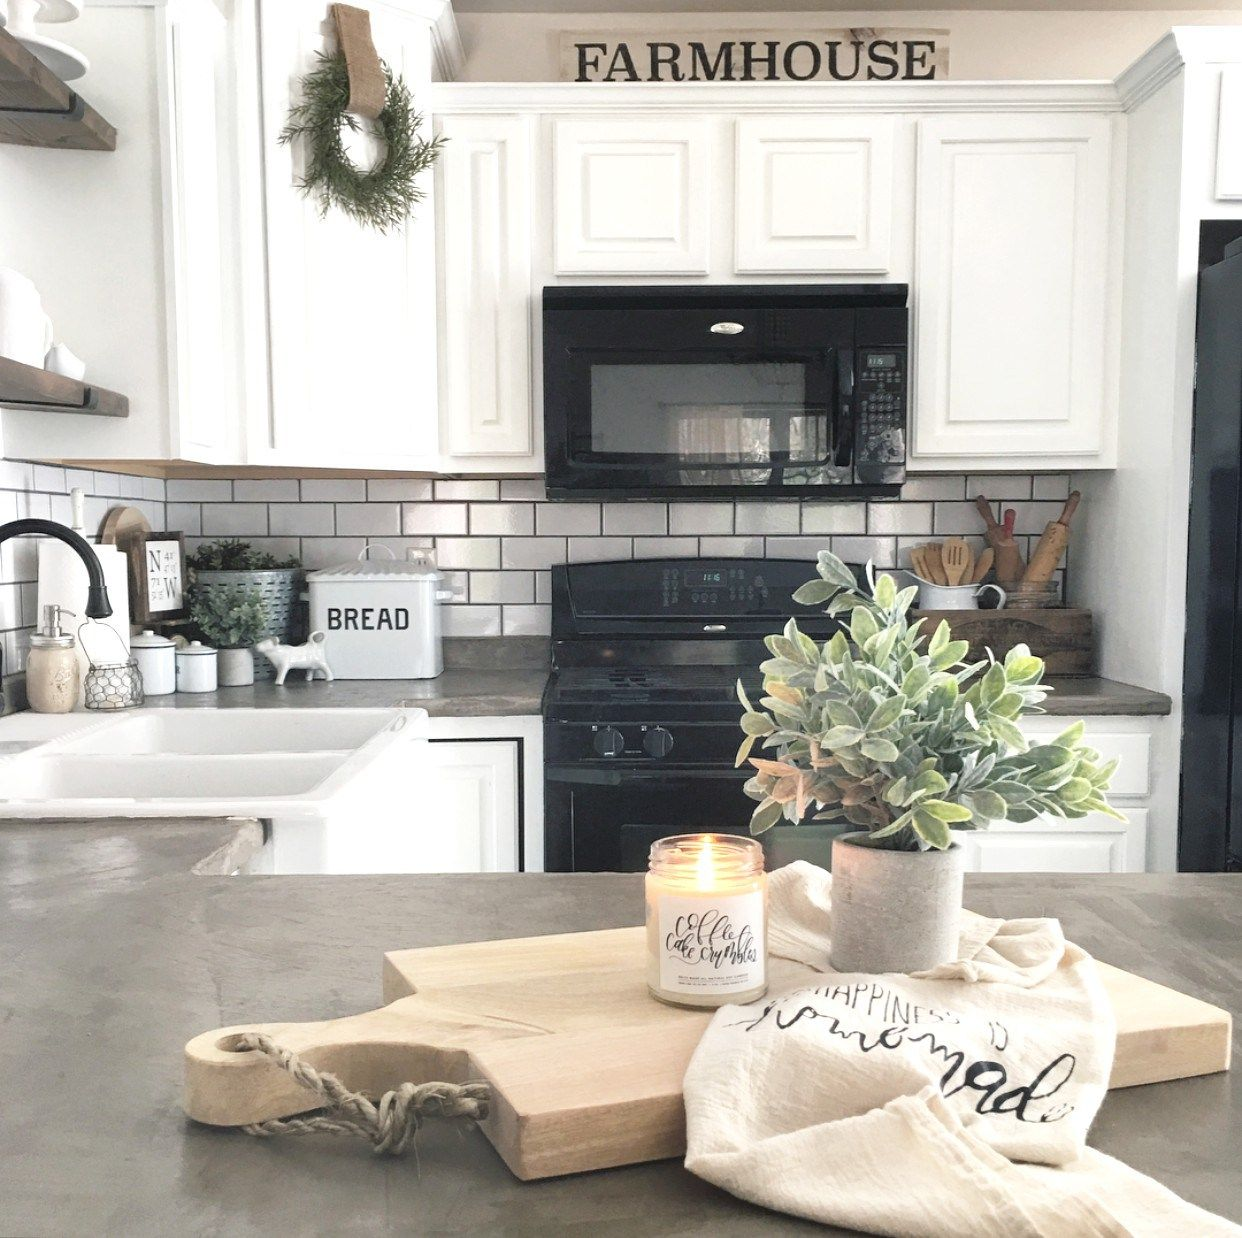 farmhouse kitchen the little white farmhouse blog pinterest farmhouse kitchens kitchens. Black Bedroom Furniture Sets. Home Design Ideas